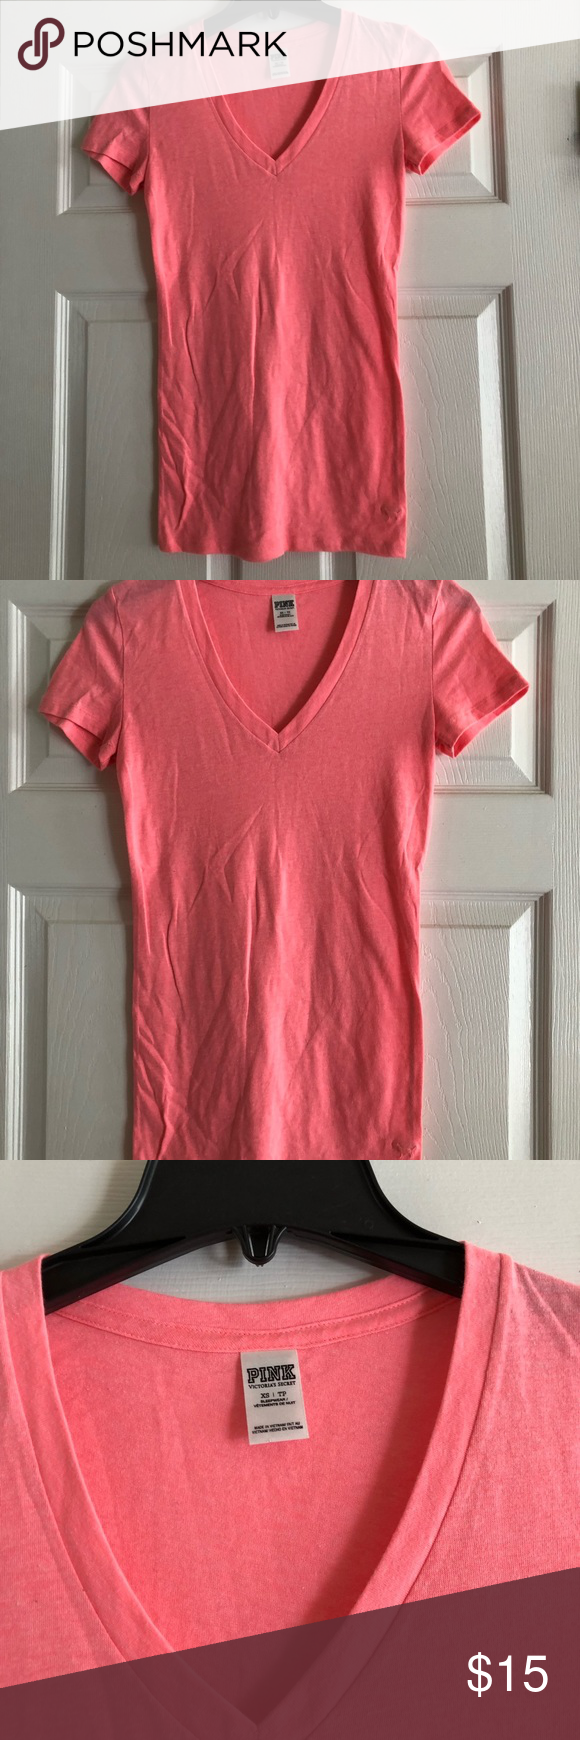 Pink Coral Colored Tee Shirt Size Extra Small My Posh Picks